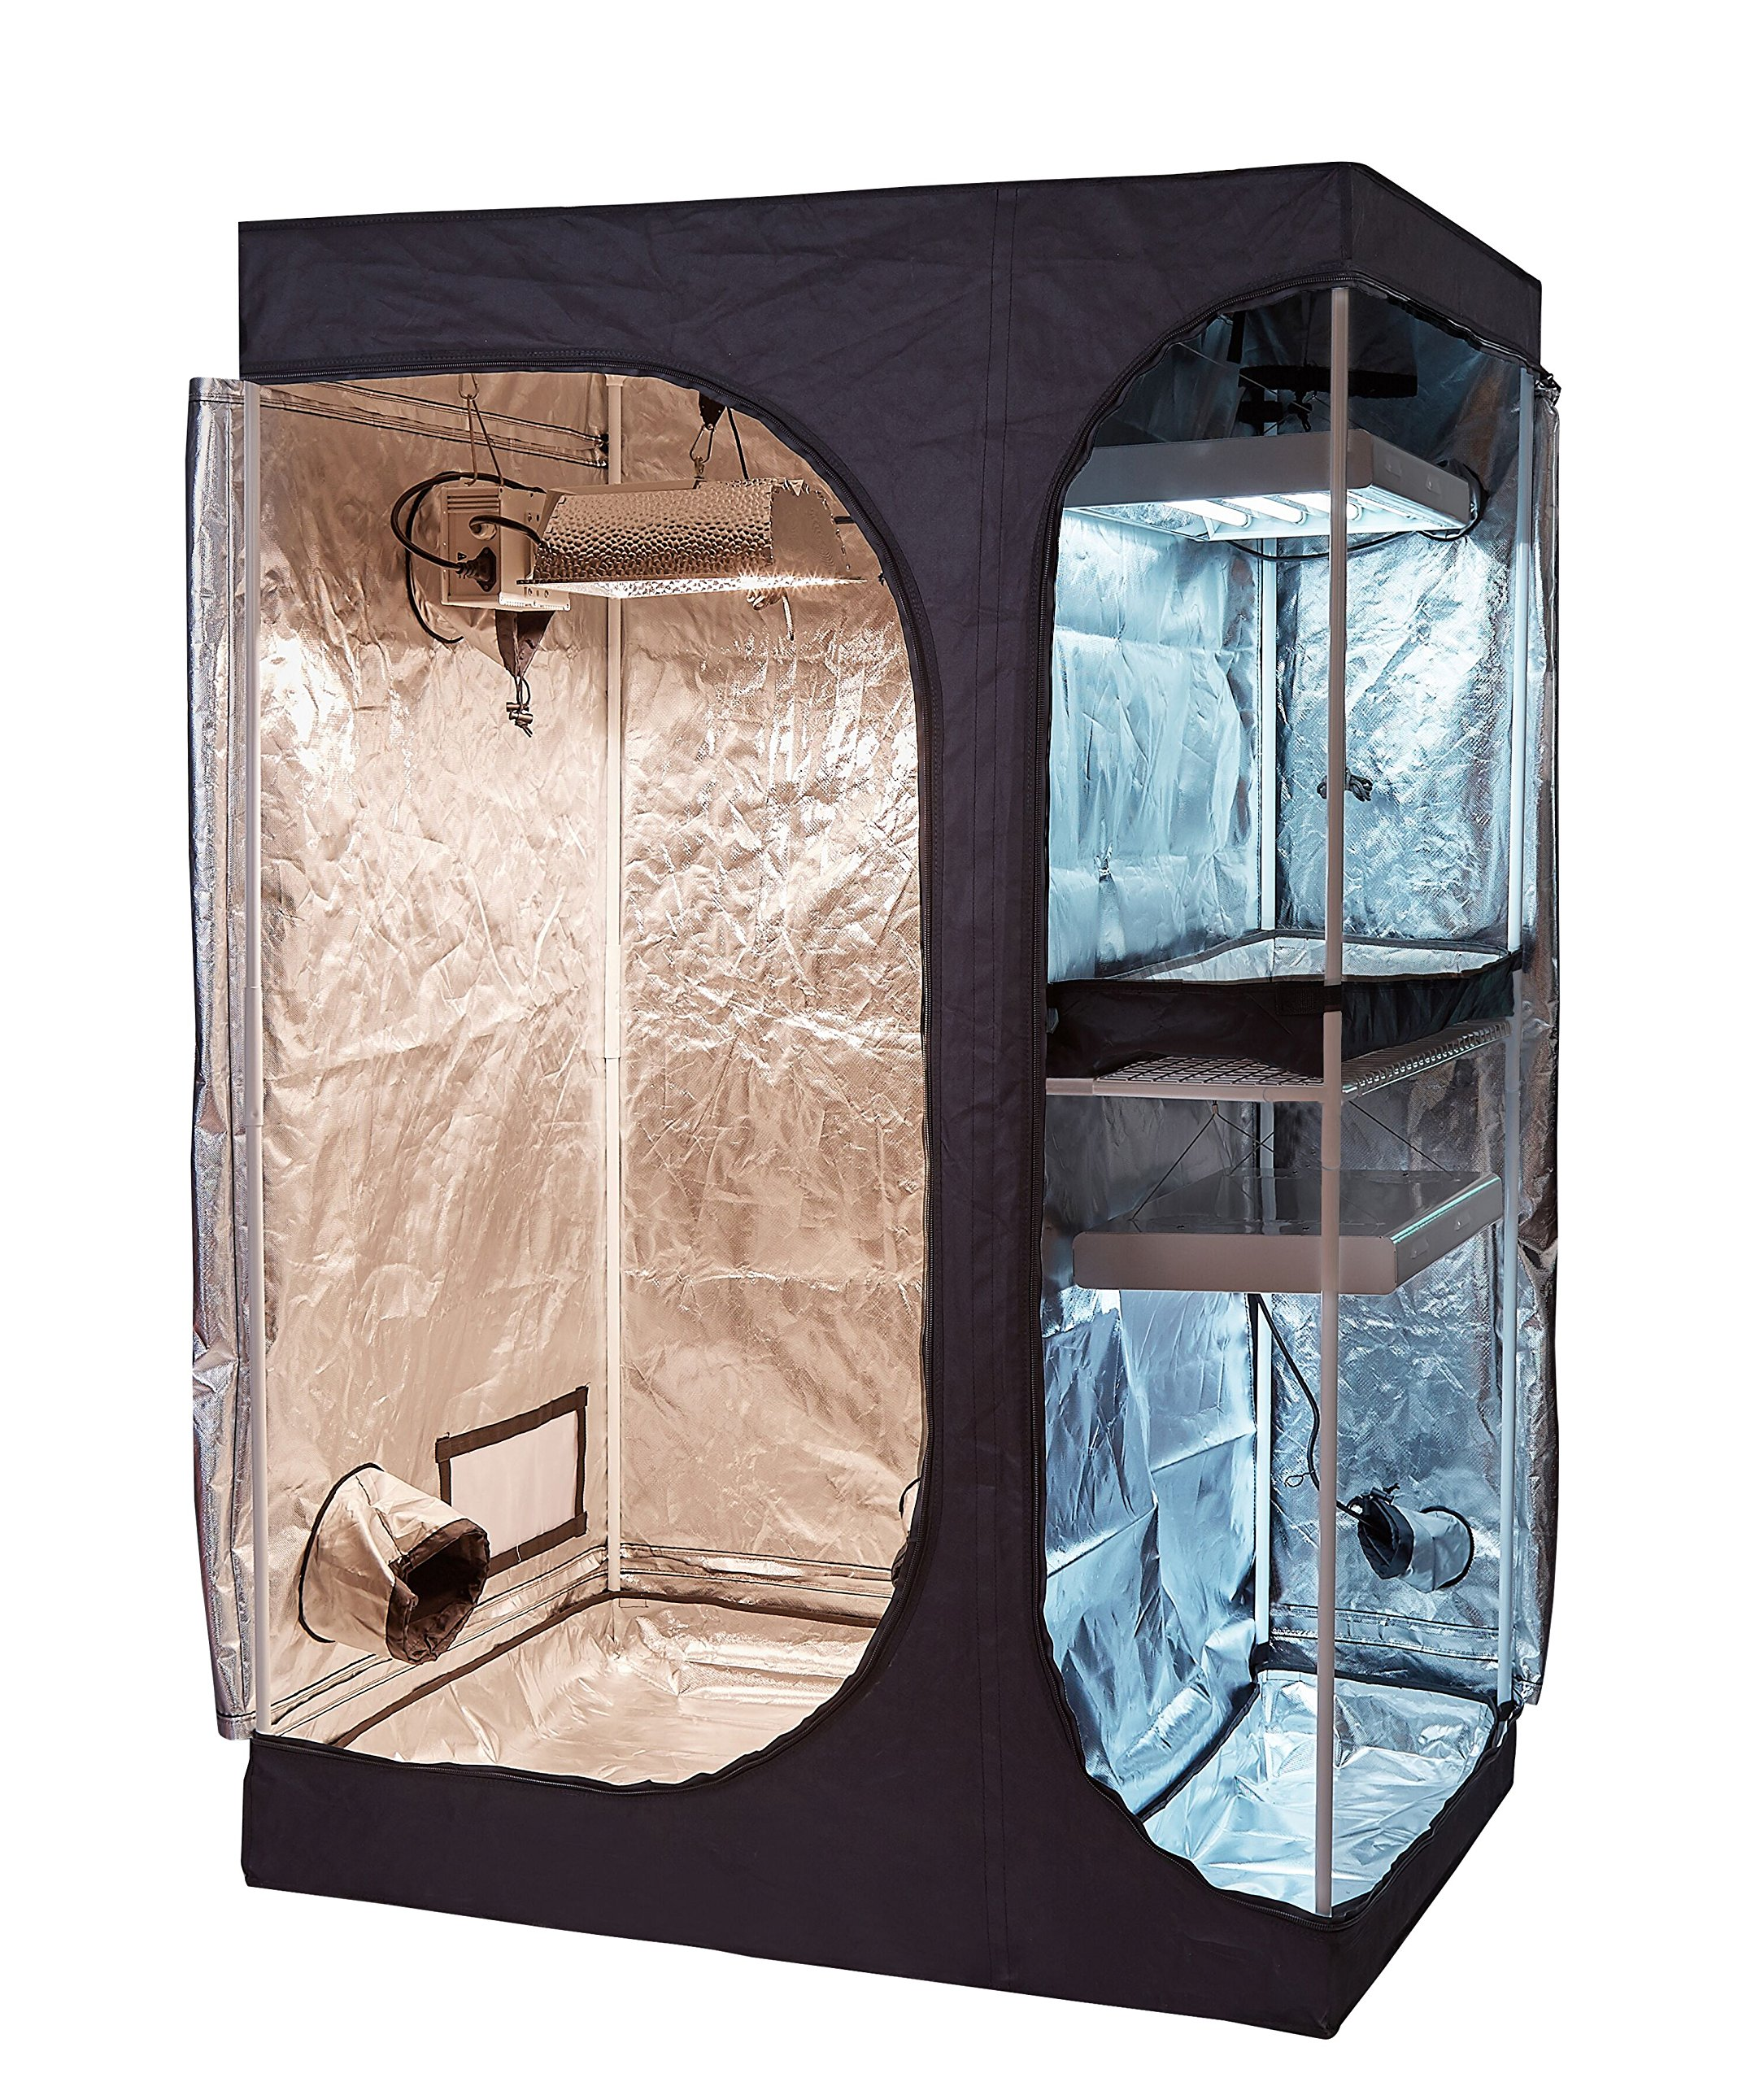 PrimeGarden Hydroponic 36''X24''X53'' 2-in-1 Water-Resistant 600D High-Reflective Mylar Grow Tent Non Toxic Indoor Room with Removable Floor Tray for Indoor Plant Growing (36''X24'X53'')